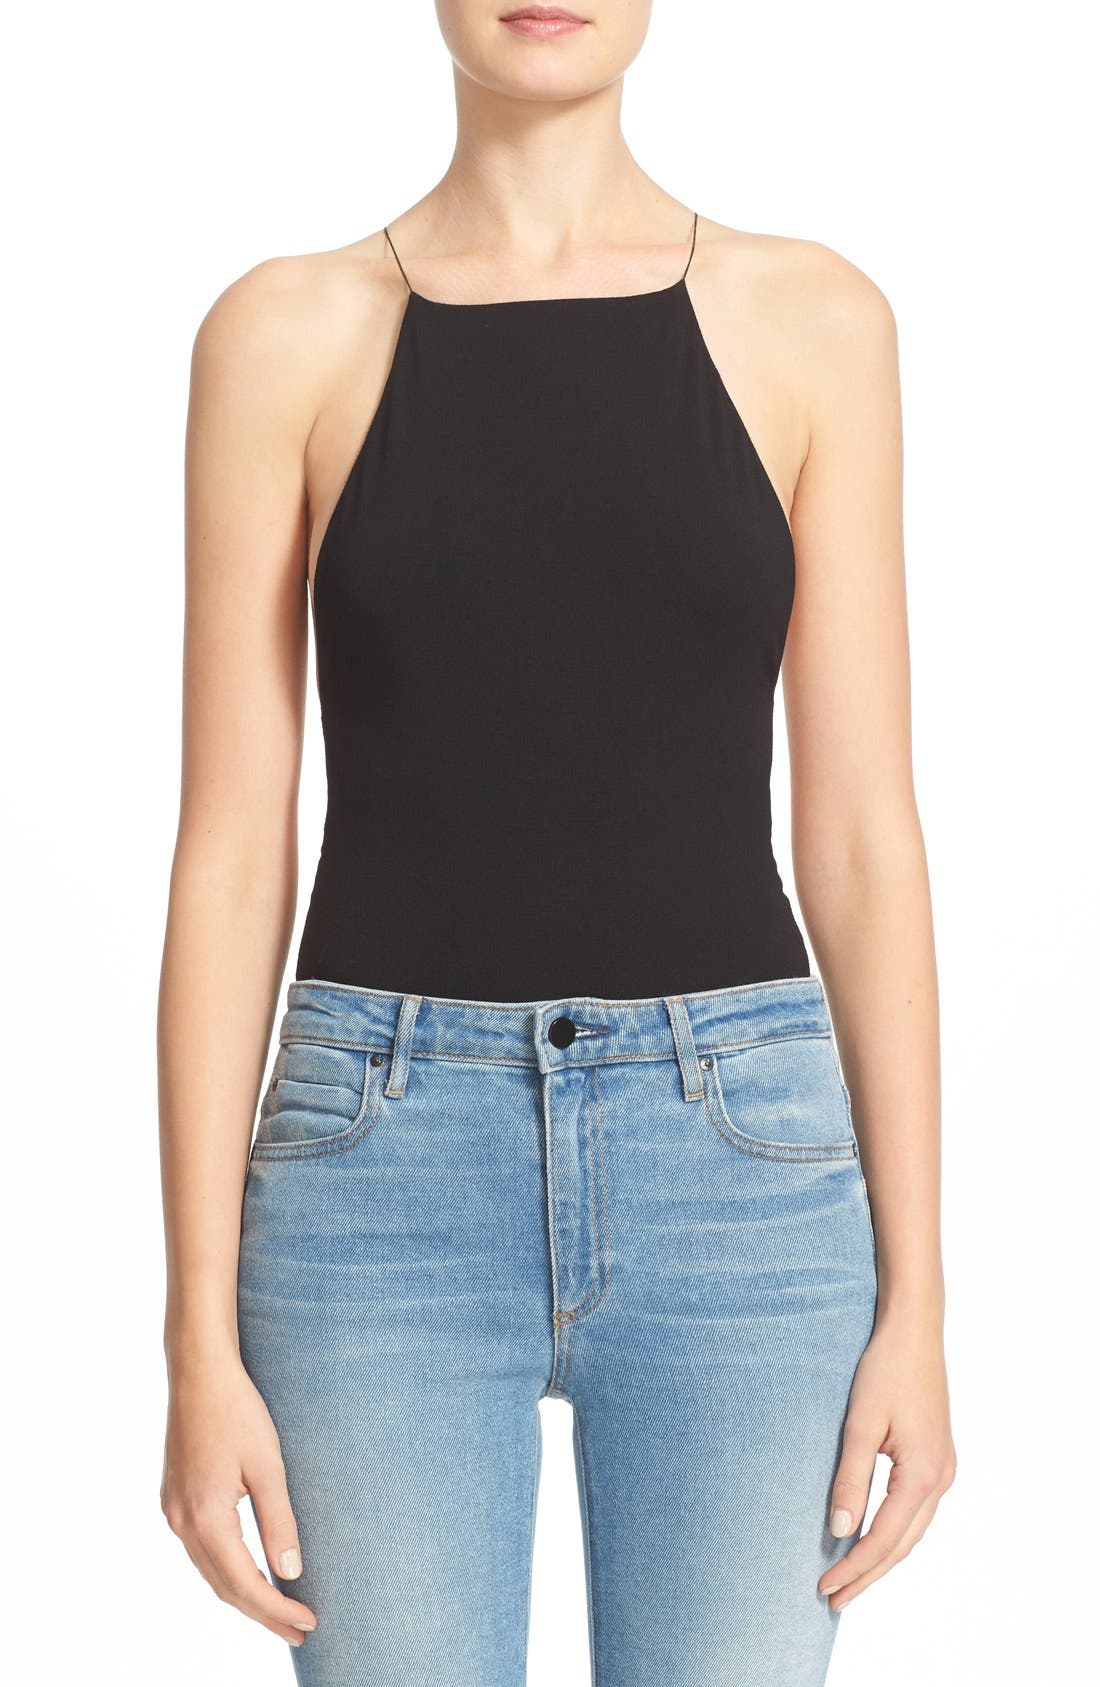 Alternate Image 1 Selected - T by Alexander Wang Stretch Modal Bodysuit